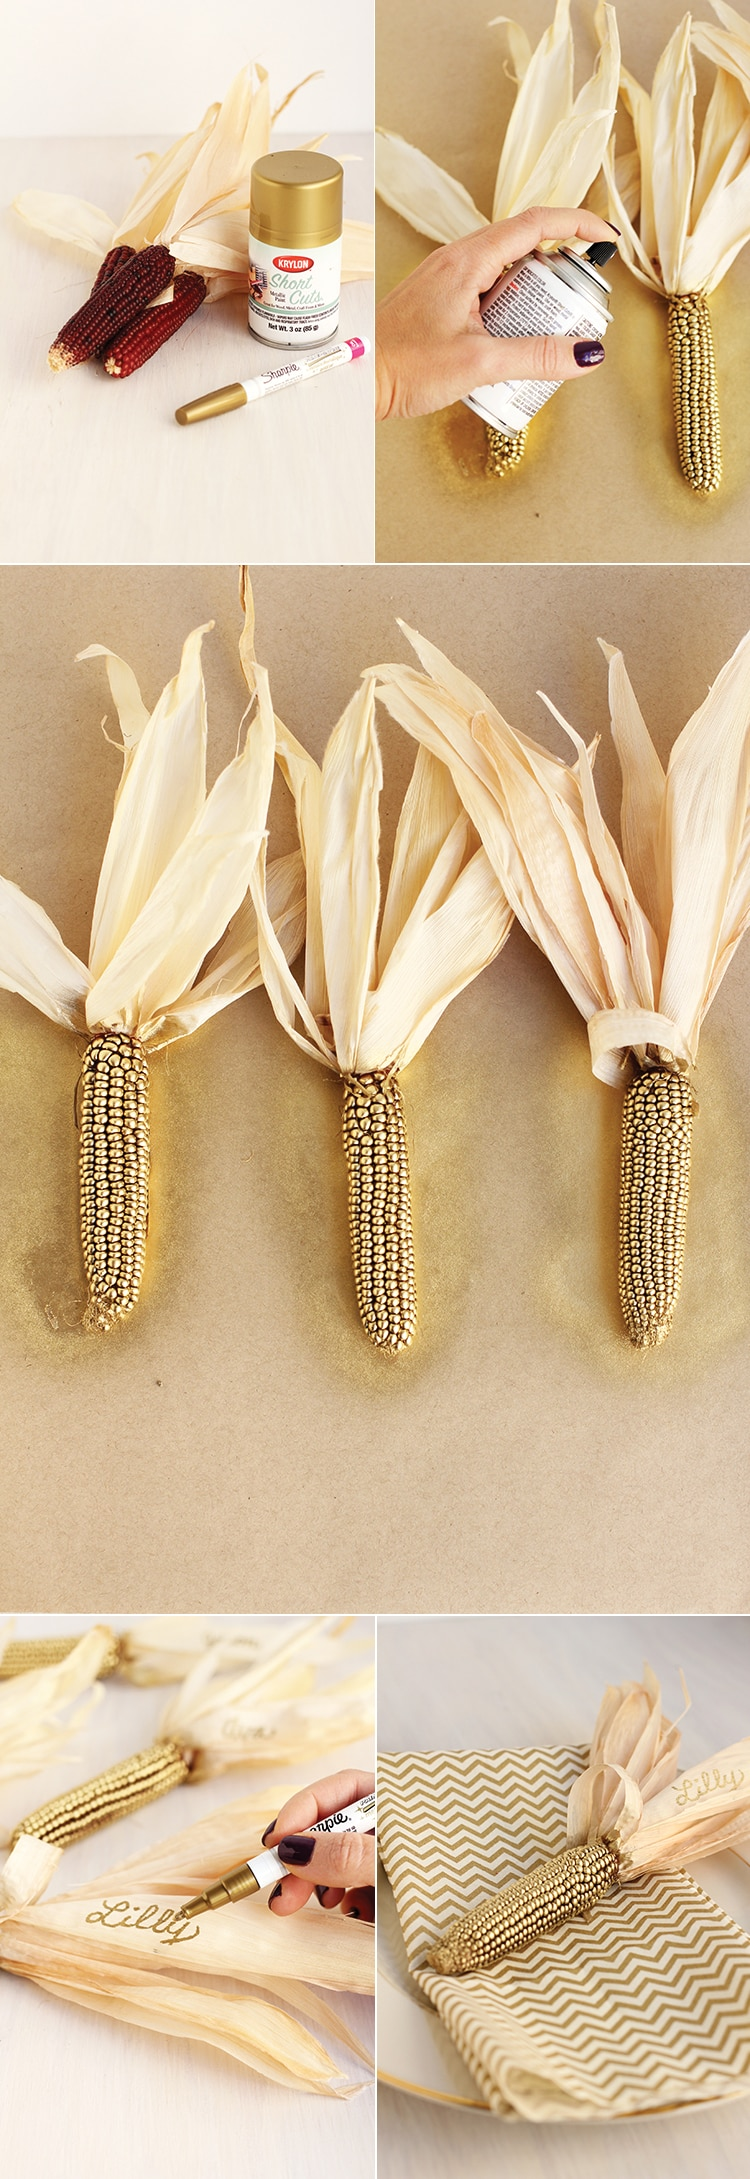 Golden Corn Place Holders How To Thanksgiving Gold Corn Place Holders